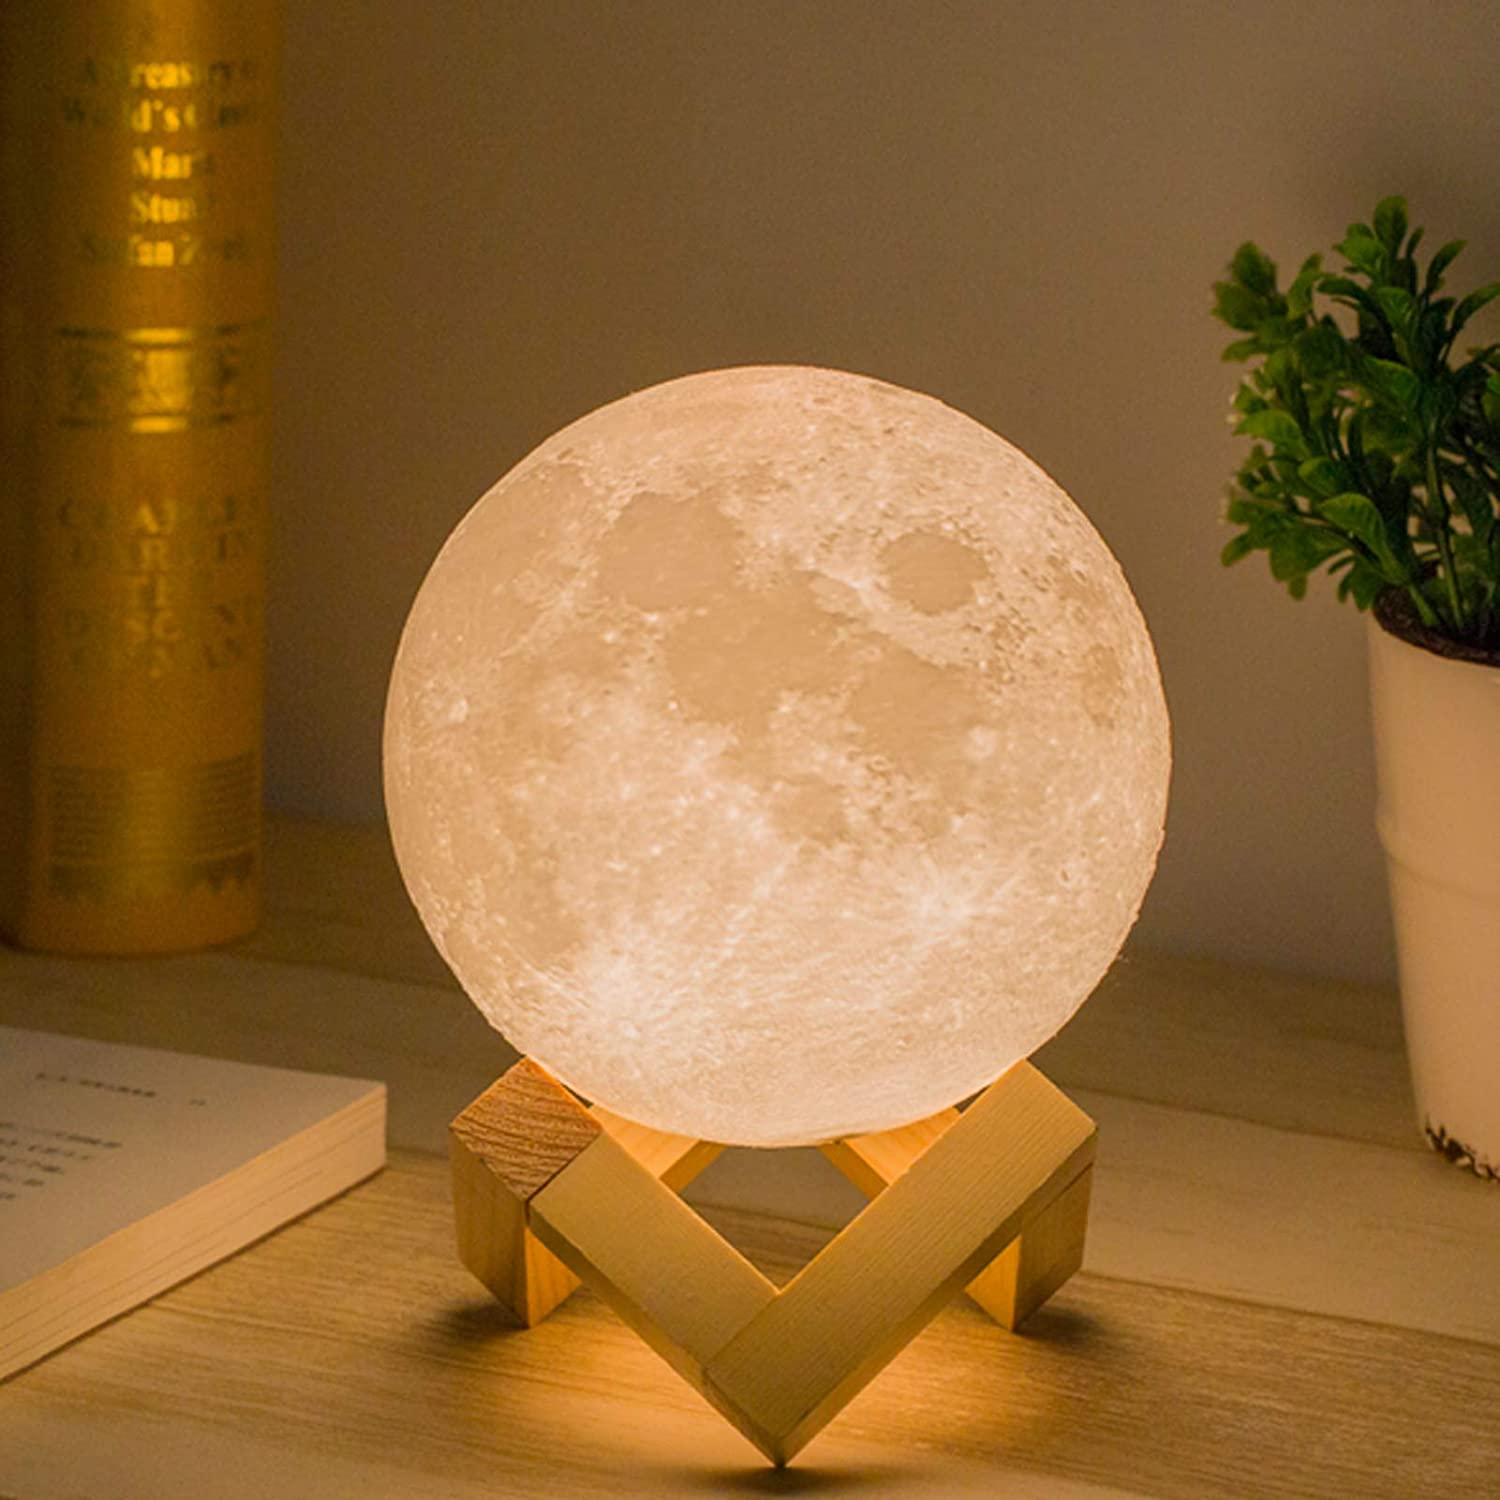 Out of all the gift ideas for women over 40, a moon lamp is the most precious and unique. This attractive moon lamp glows beautifully wherever you place it. Your loved one is definitely going to place it in her bedroom and will smile whenever she looks at it.